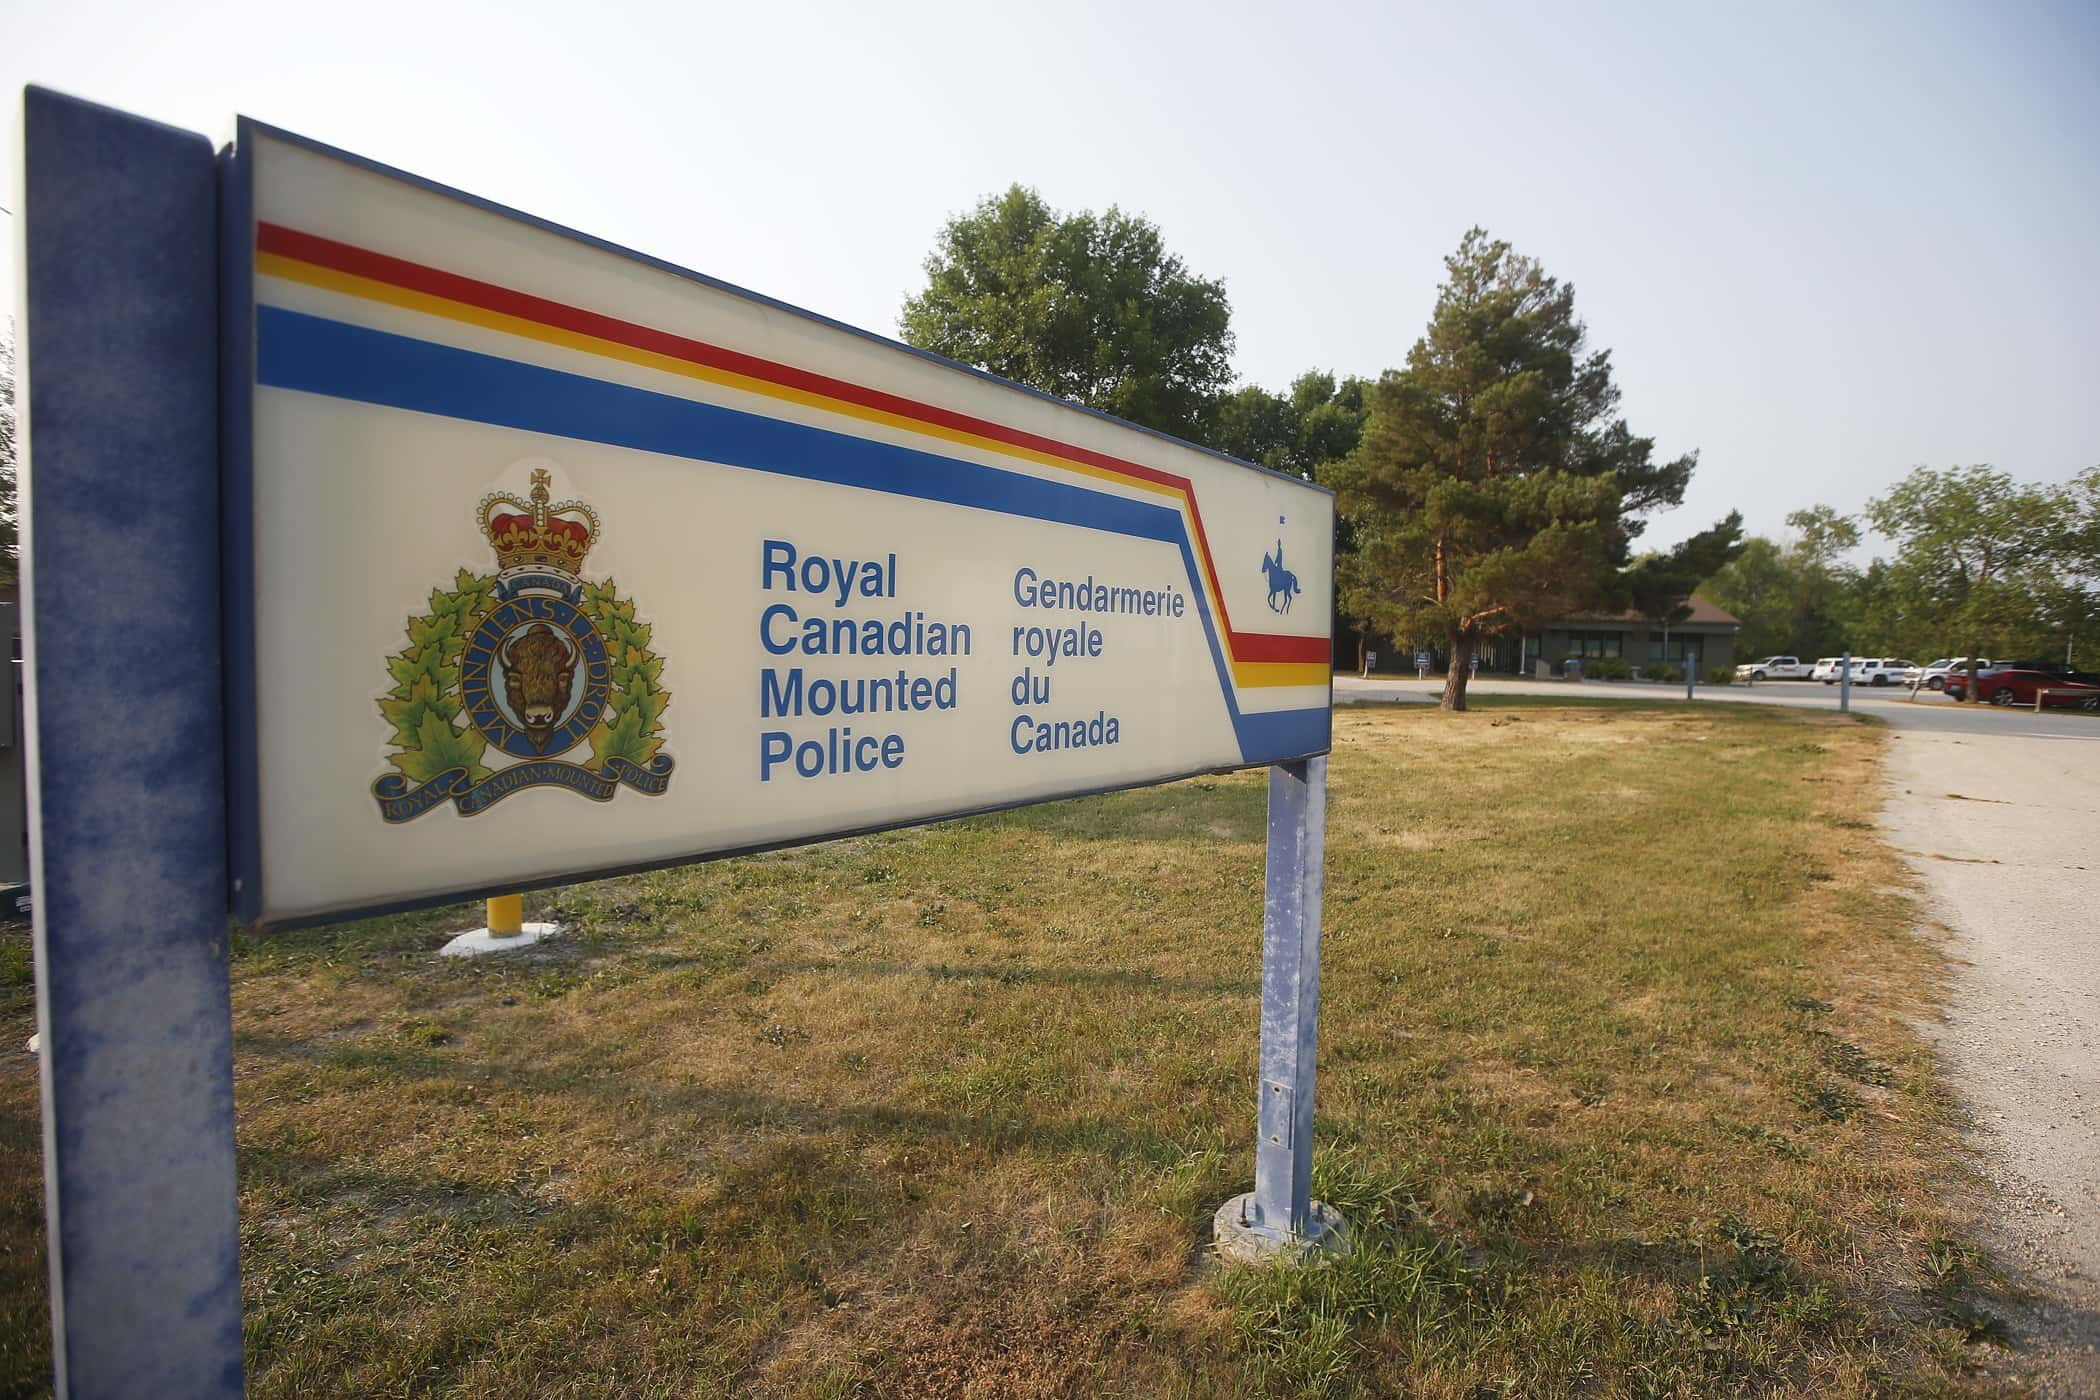 A decade-long investigation by Manitoba RCMP into historic allegations of child sex abuse at the Fort Alexander Indian Residential School required interviews with more than 700 people and gathered 75 victim and witness statements. (John Woods / Winnipeg Free Press files)